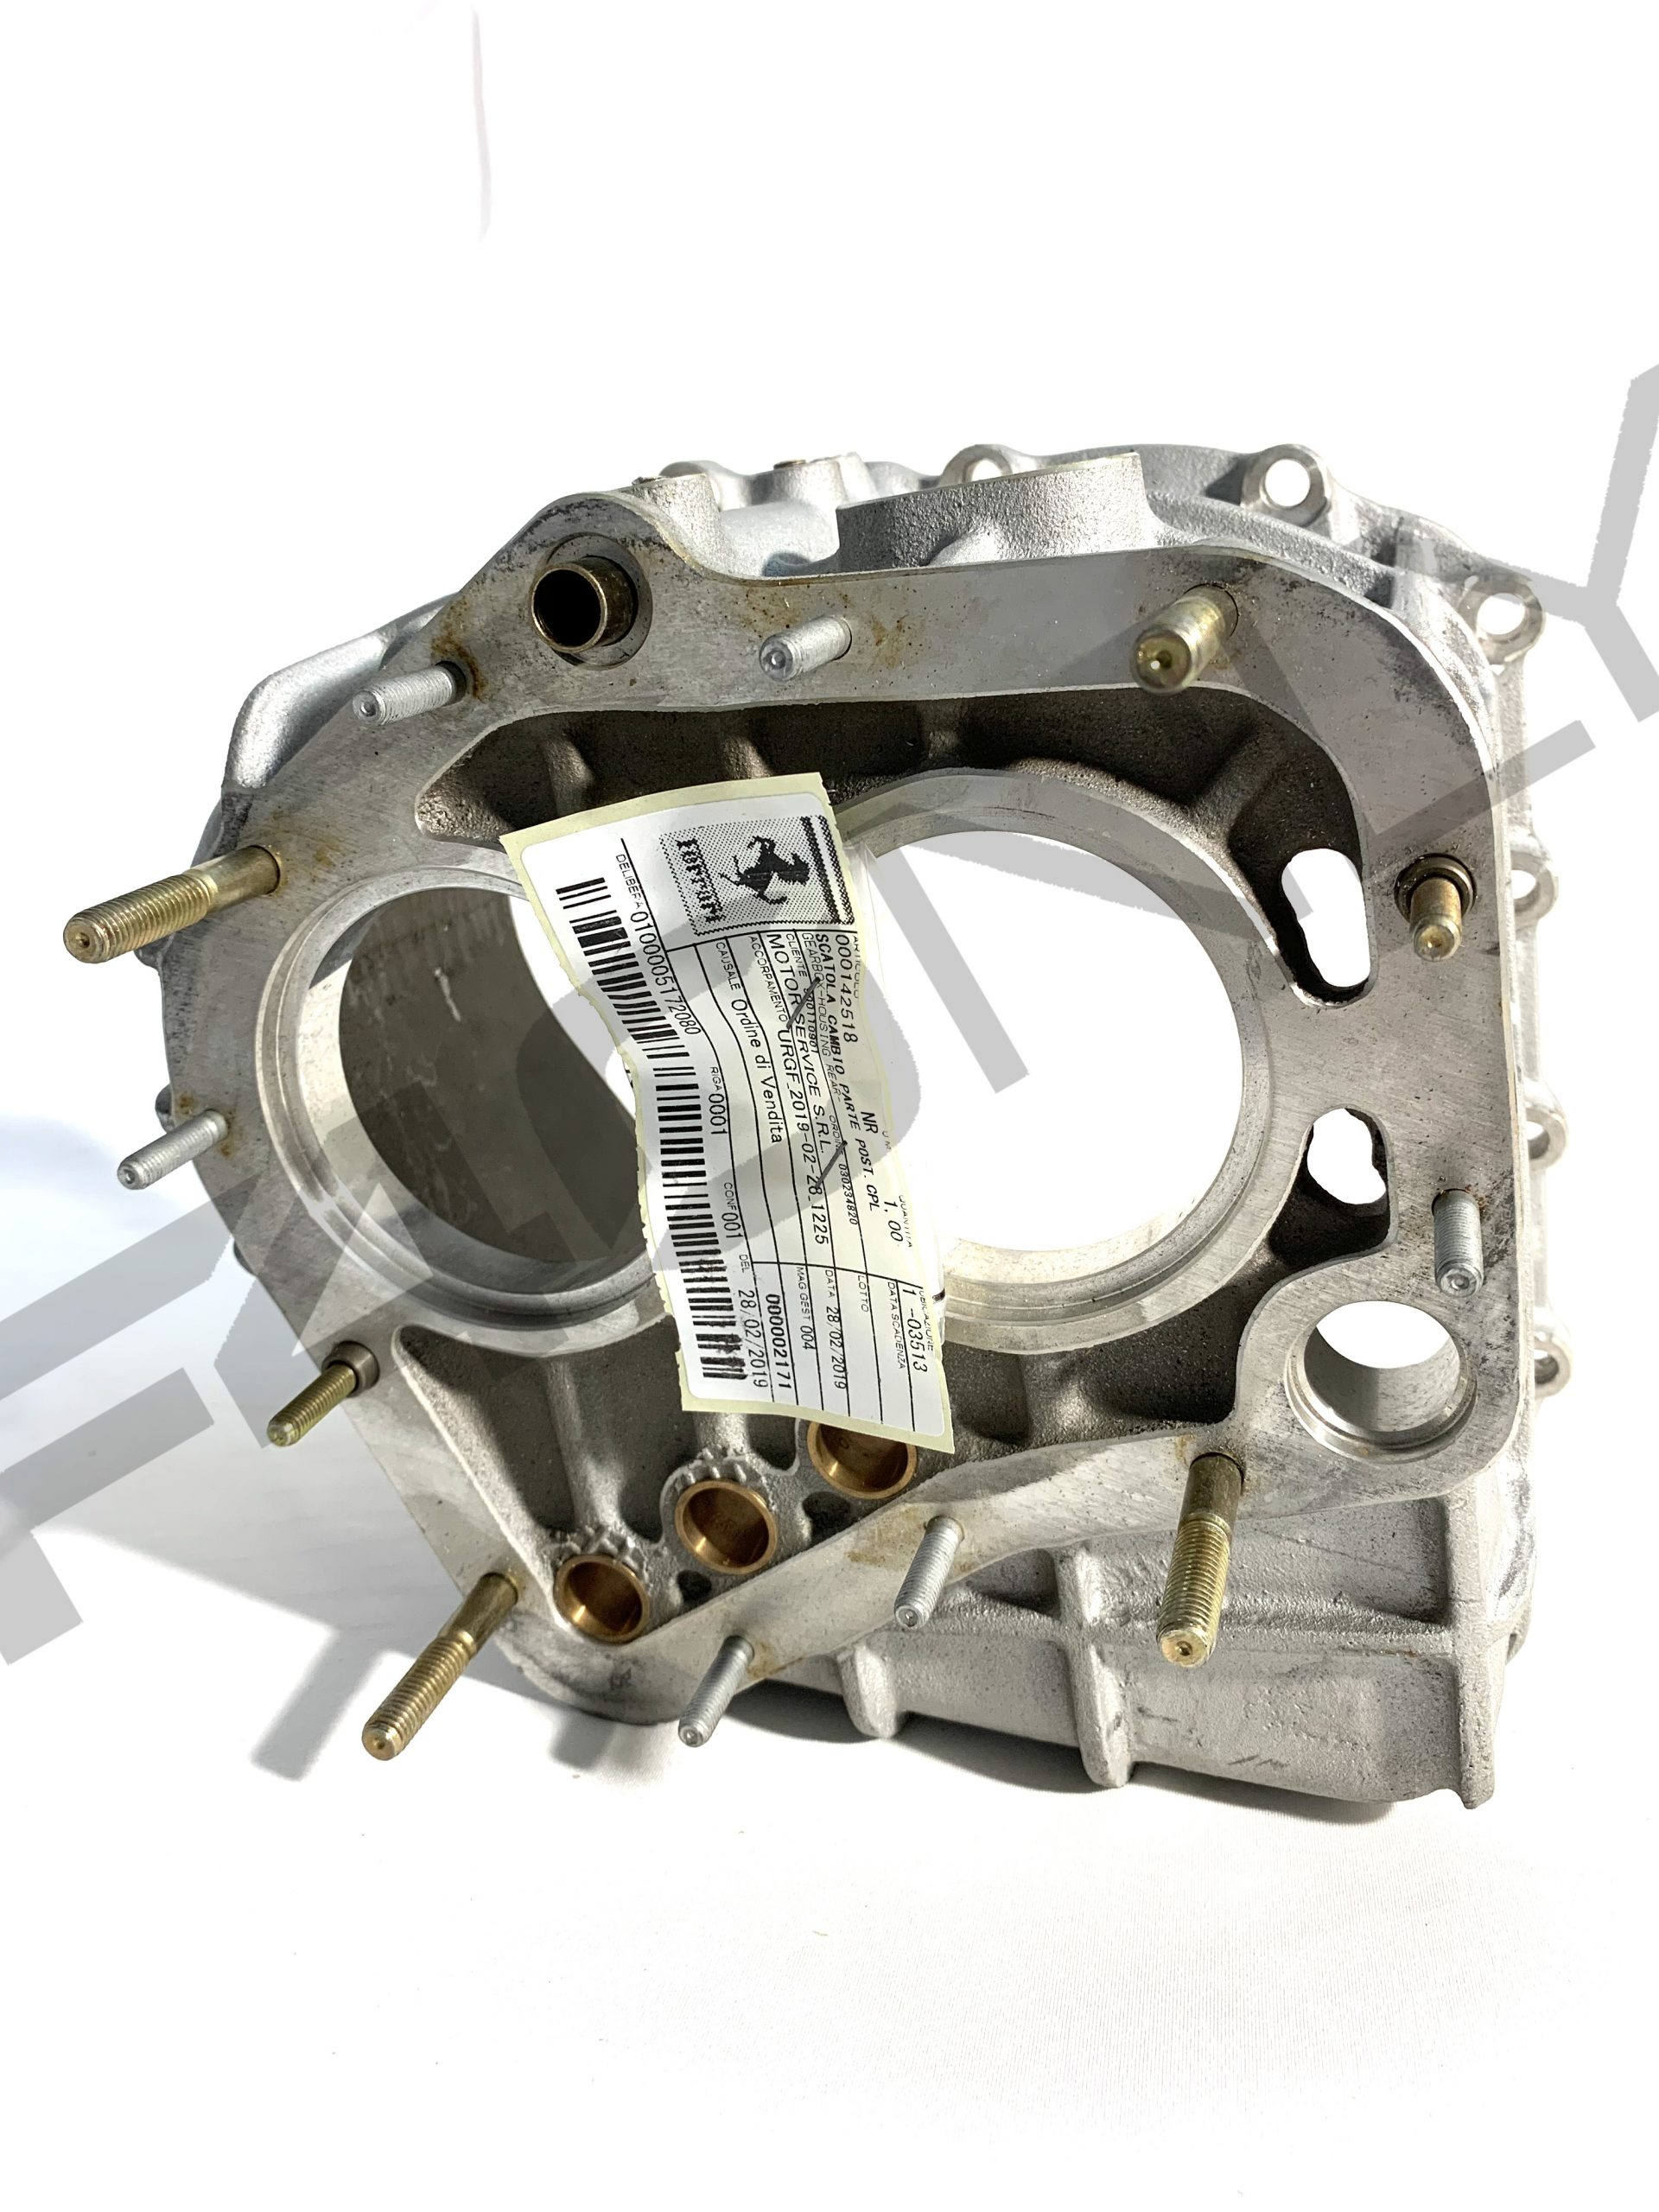 Gearbox Housing Rear Image